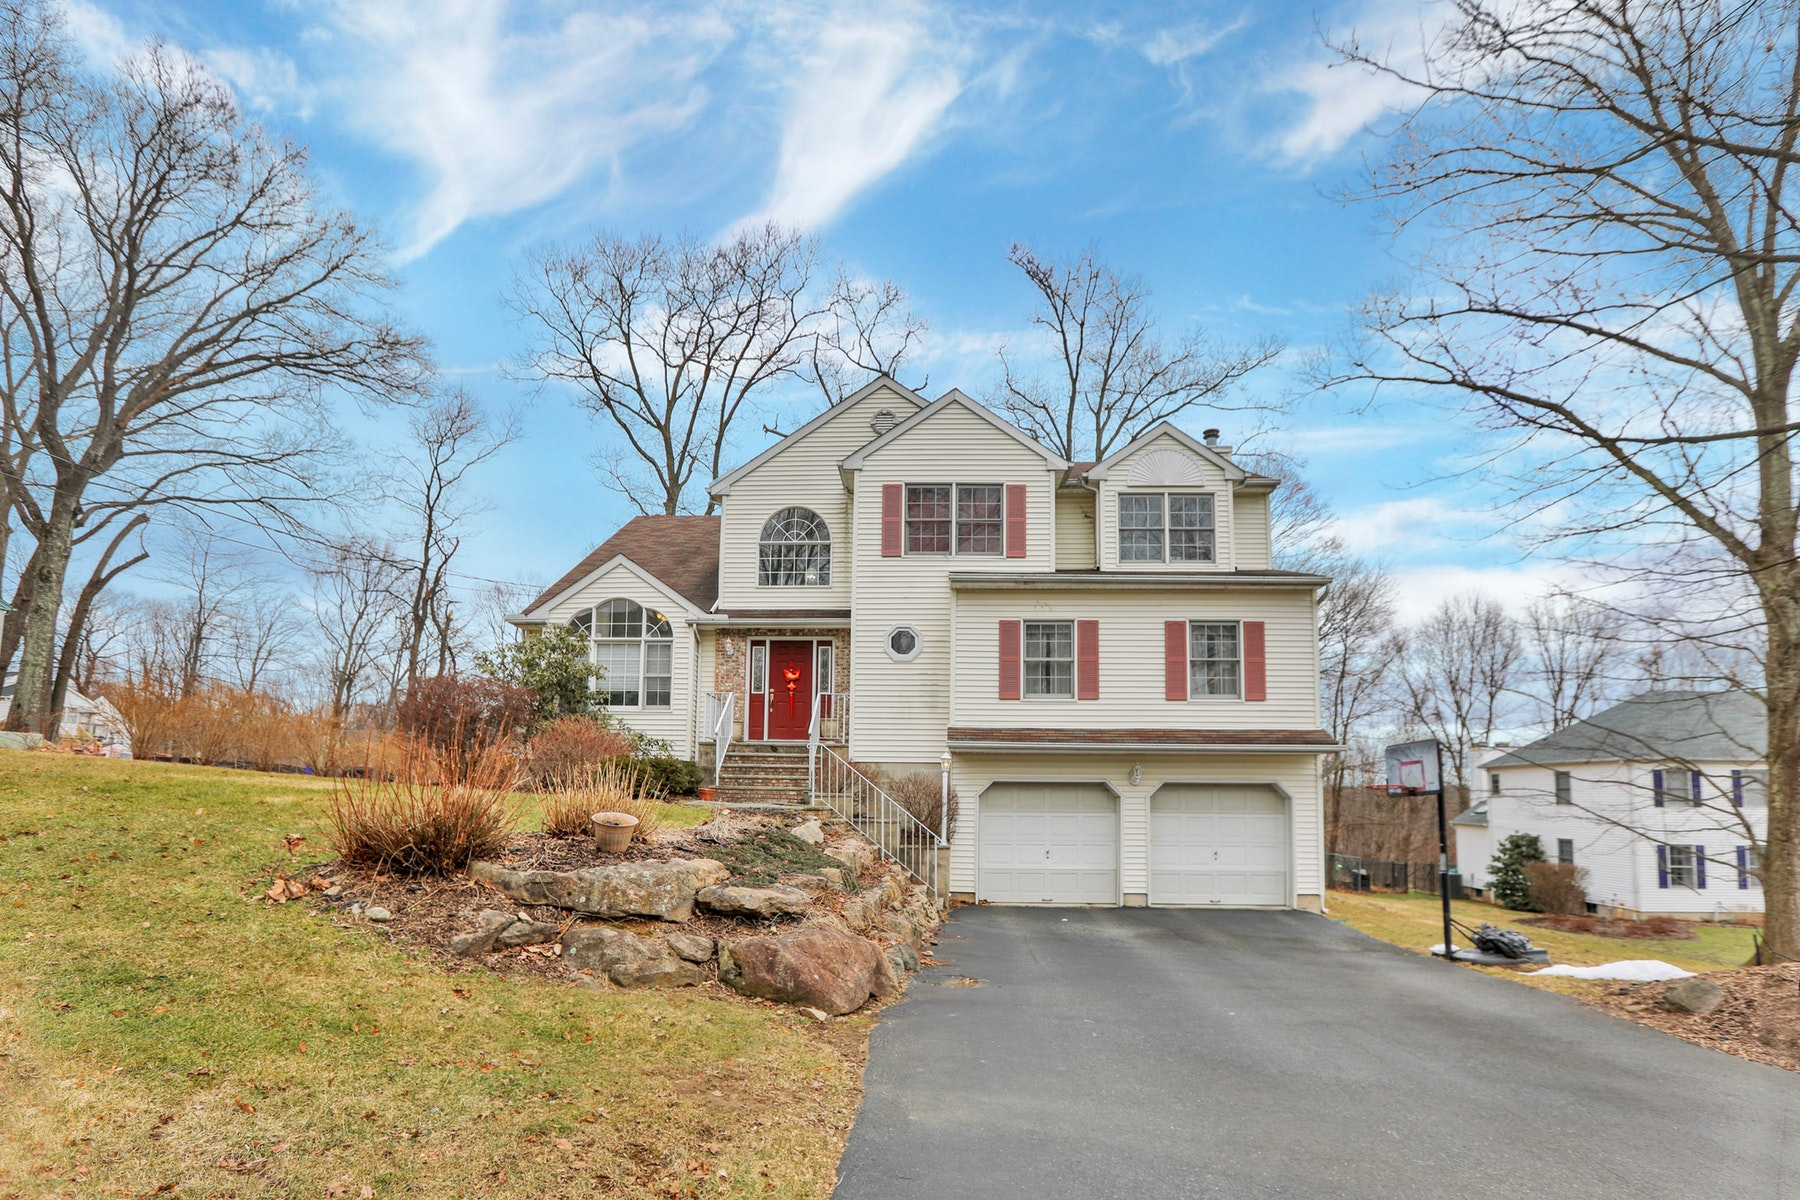 Single Family Homes for Sale at Colonial on Quiet Cul-de-Sac 18 Parkview Road Randolph, New Jersey 07869 United States